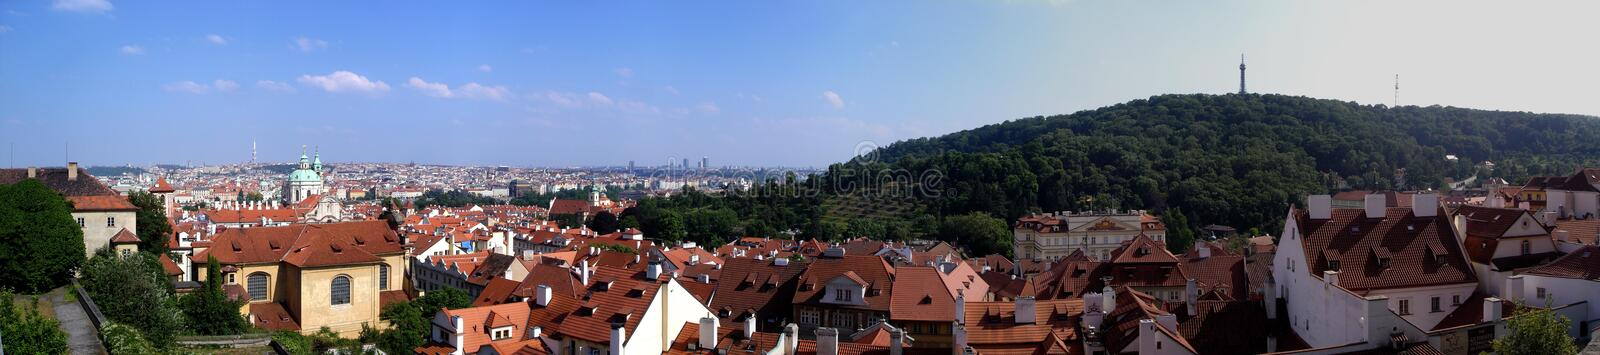 Download Prague stitched panorama stock image. Image of view, republic - 12440677